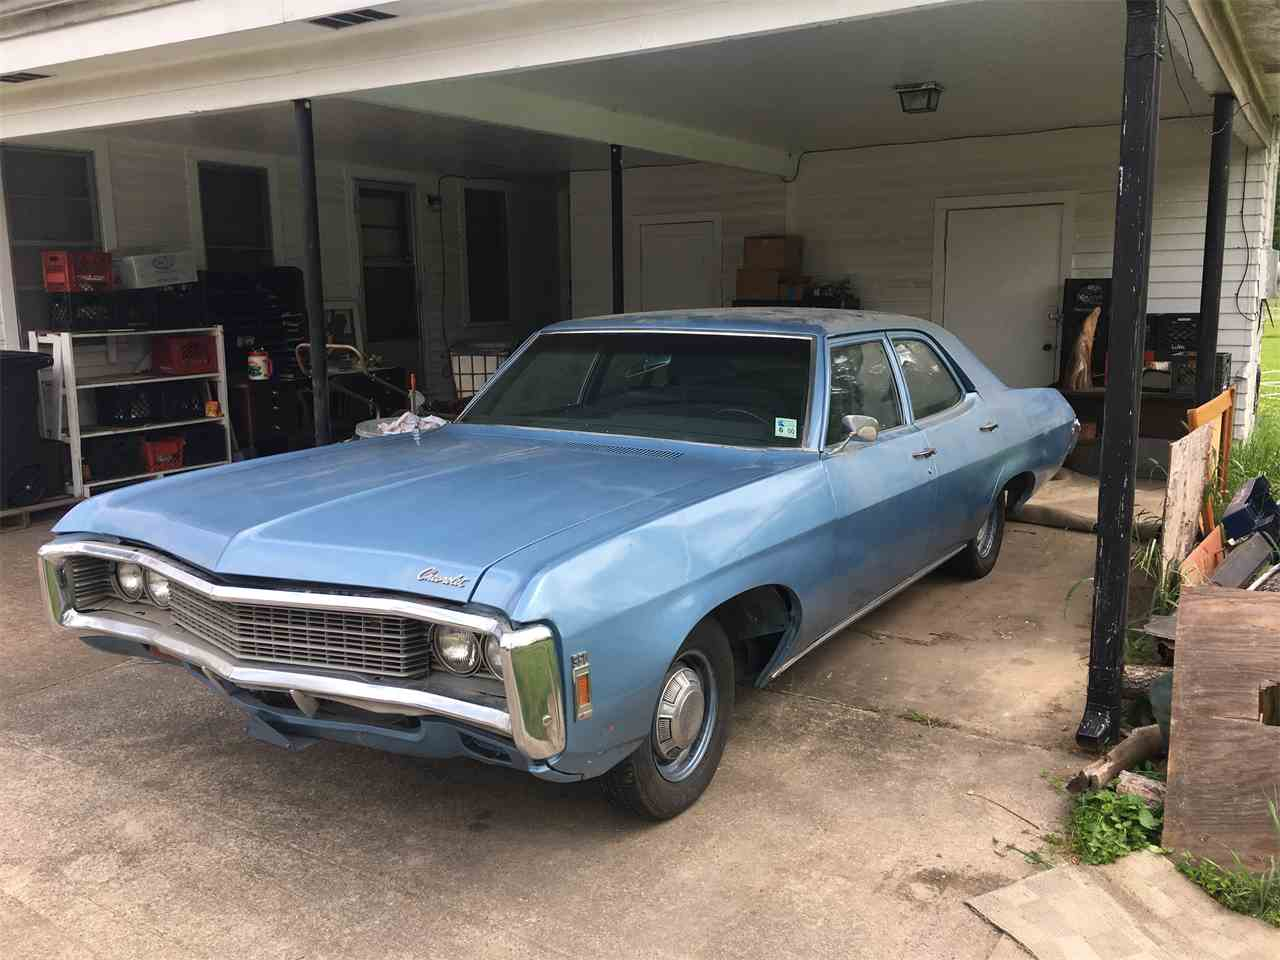 Chevrolet Dealers In Louisiana >> 1969 Chevrolet Biscayne for Sale | ClassicCars.com | CC-996570